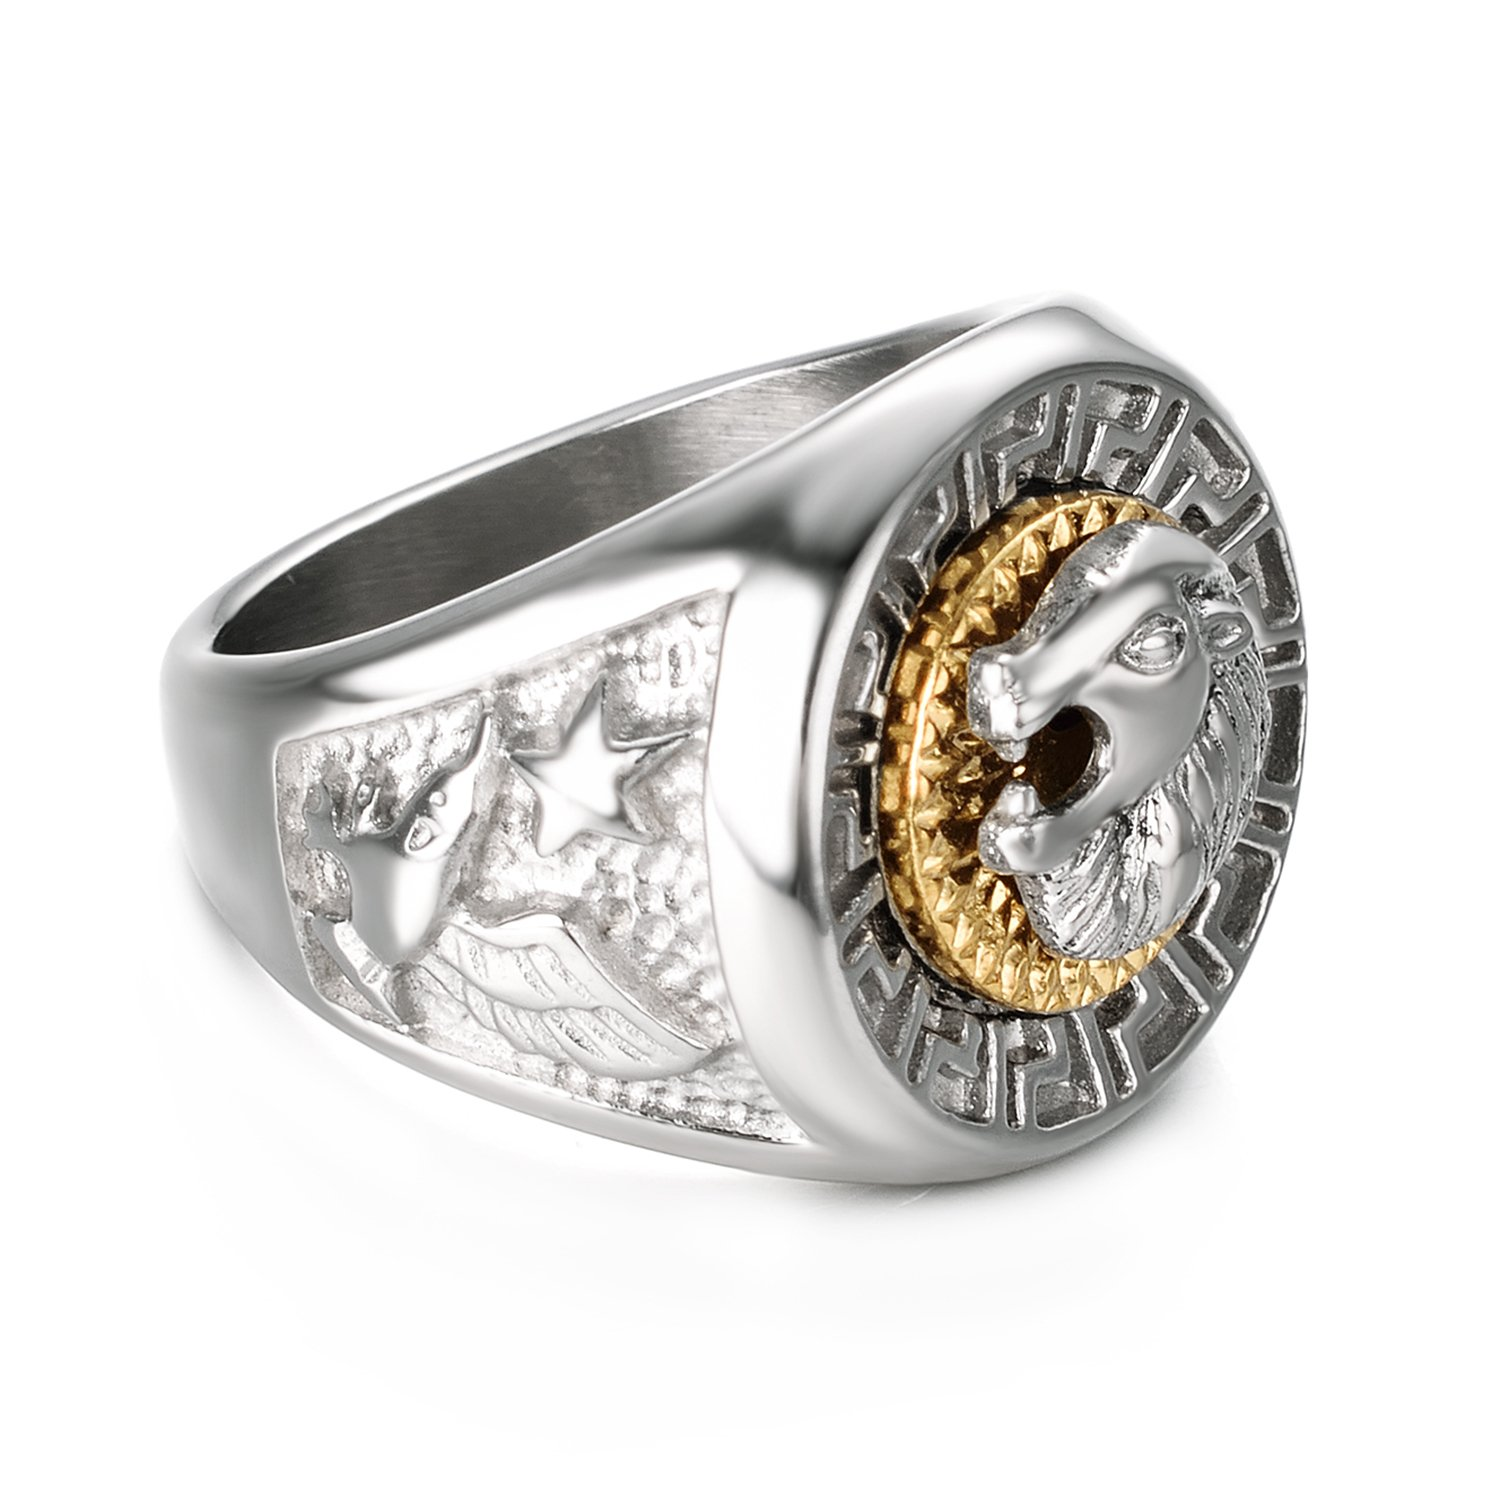 Yoursfs Lion Ring 18K Gold/Sliver Plated Hip Hop Ring Lion Ring Men's Titanium Ring (White, 12) by Yoursfs (Image #5)